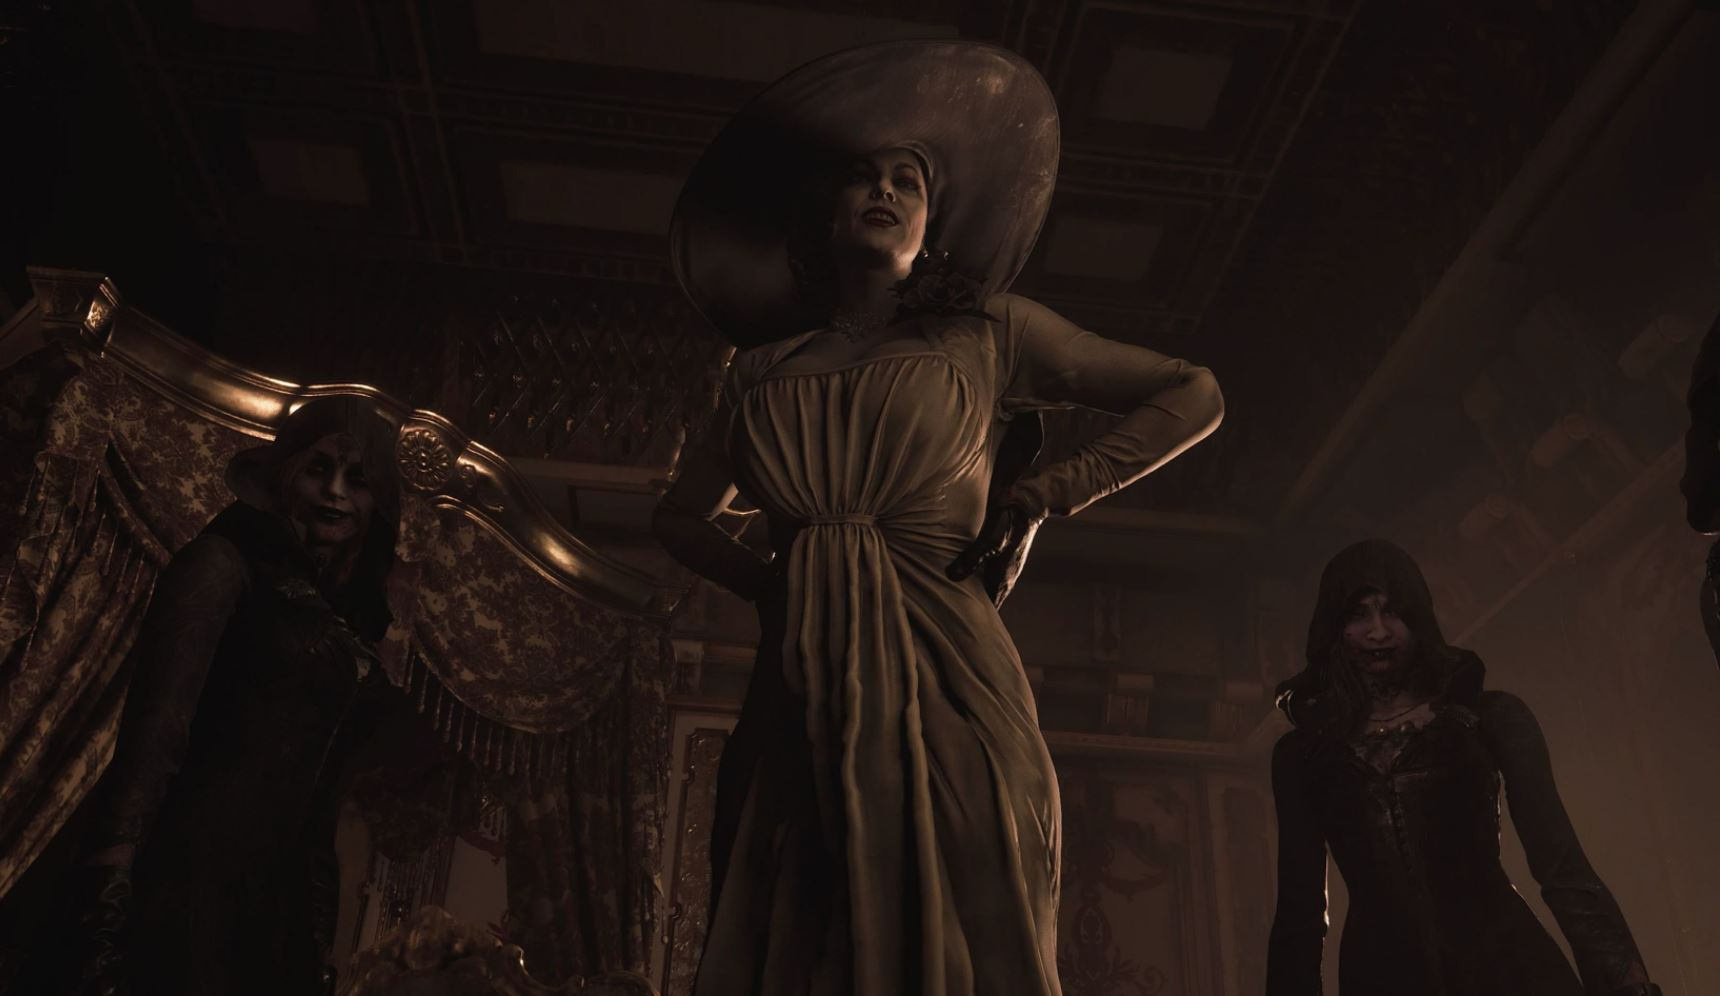 resident-evil-village-ps5-gameplay-showcase-set-for-january-21-release-date-new-gameplay-details-likely